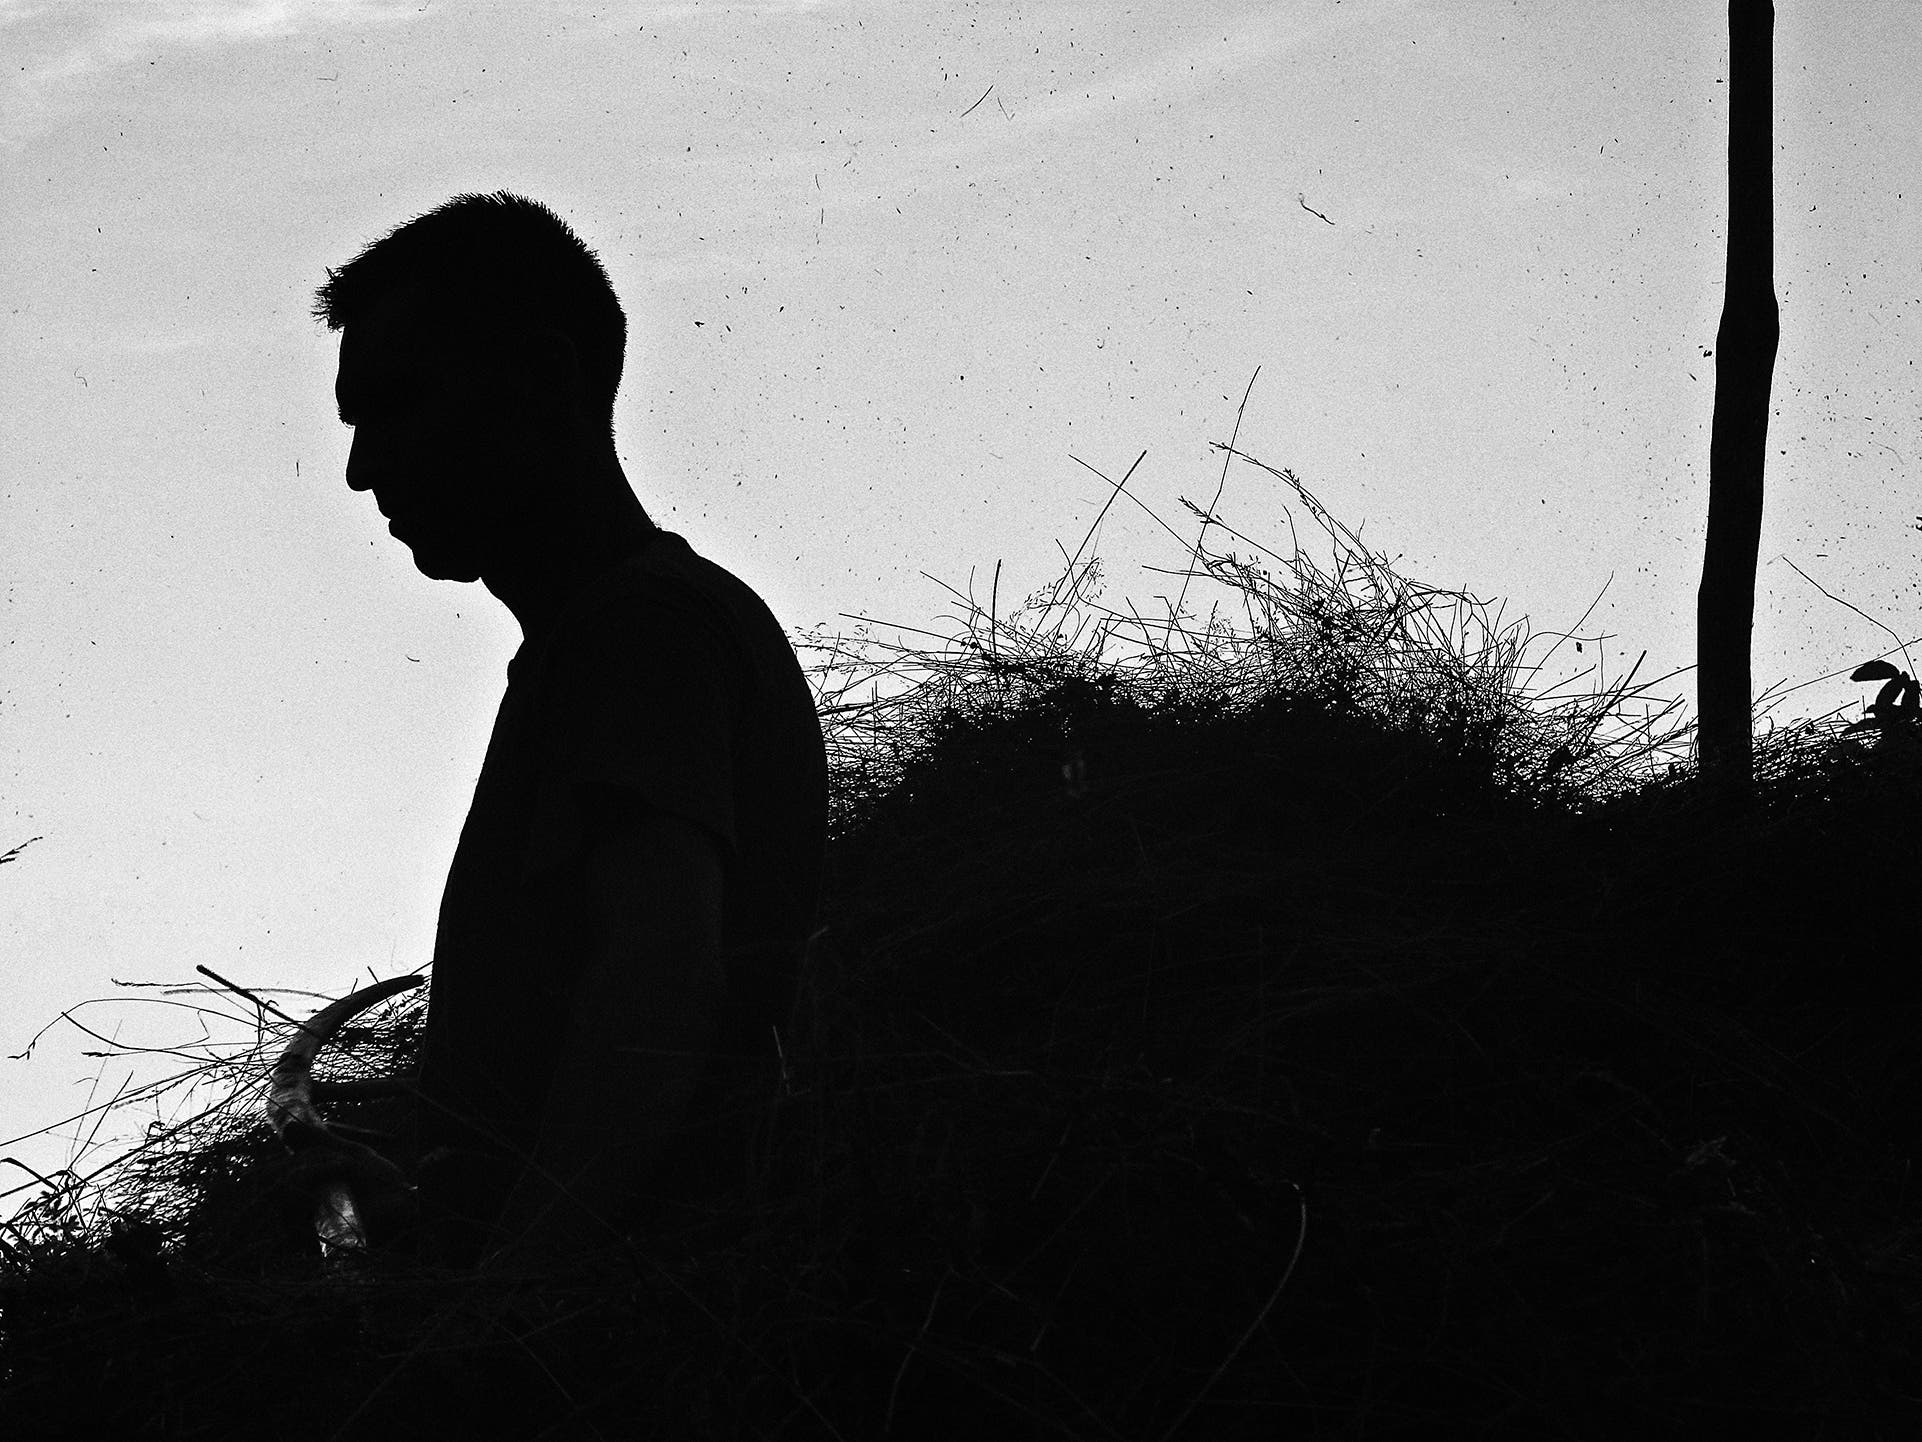 Una Salimovic's Messing With Hay Plays With Silhouettes in Black and White